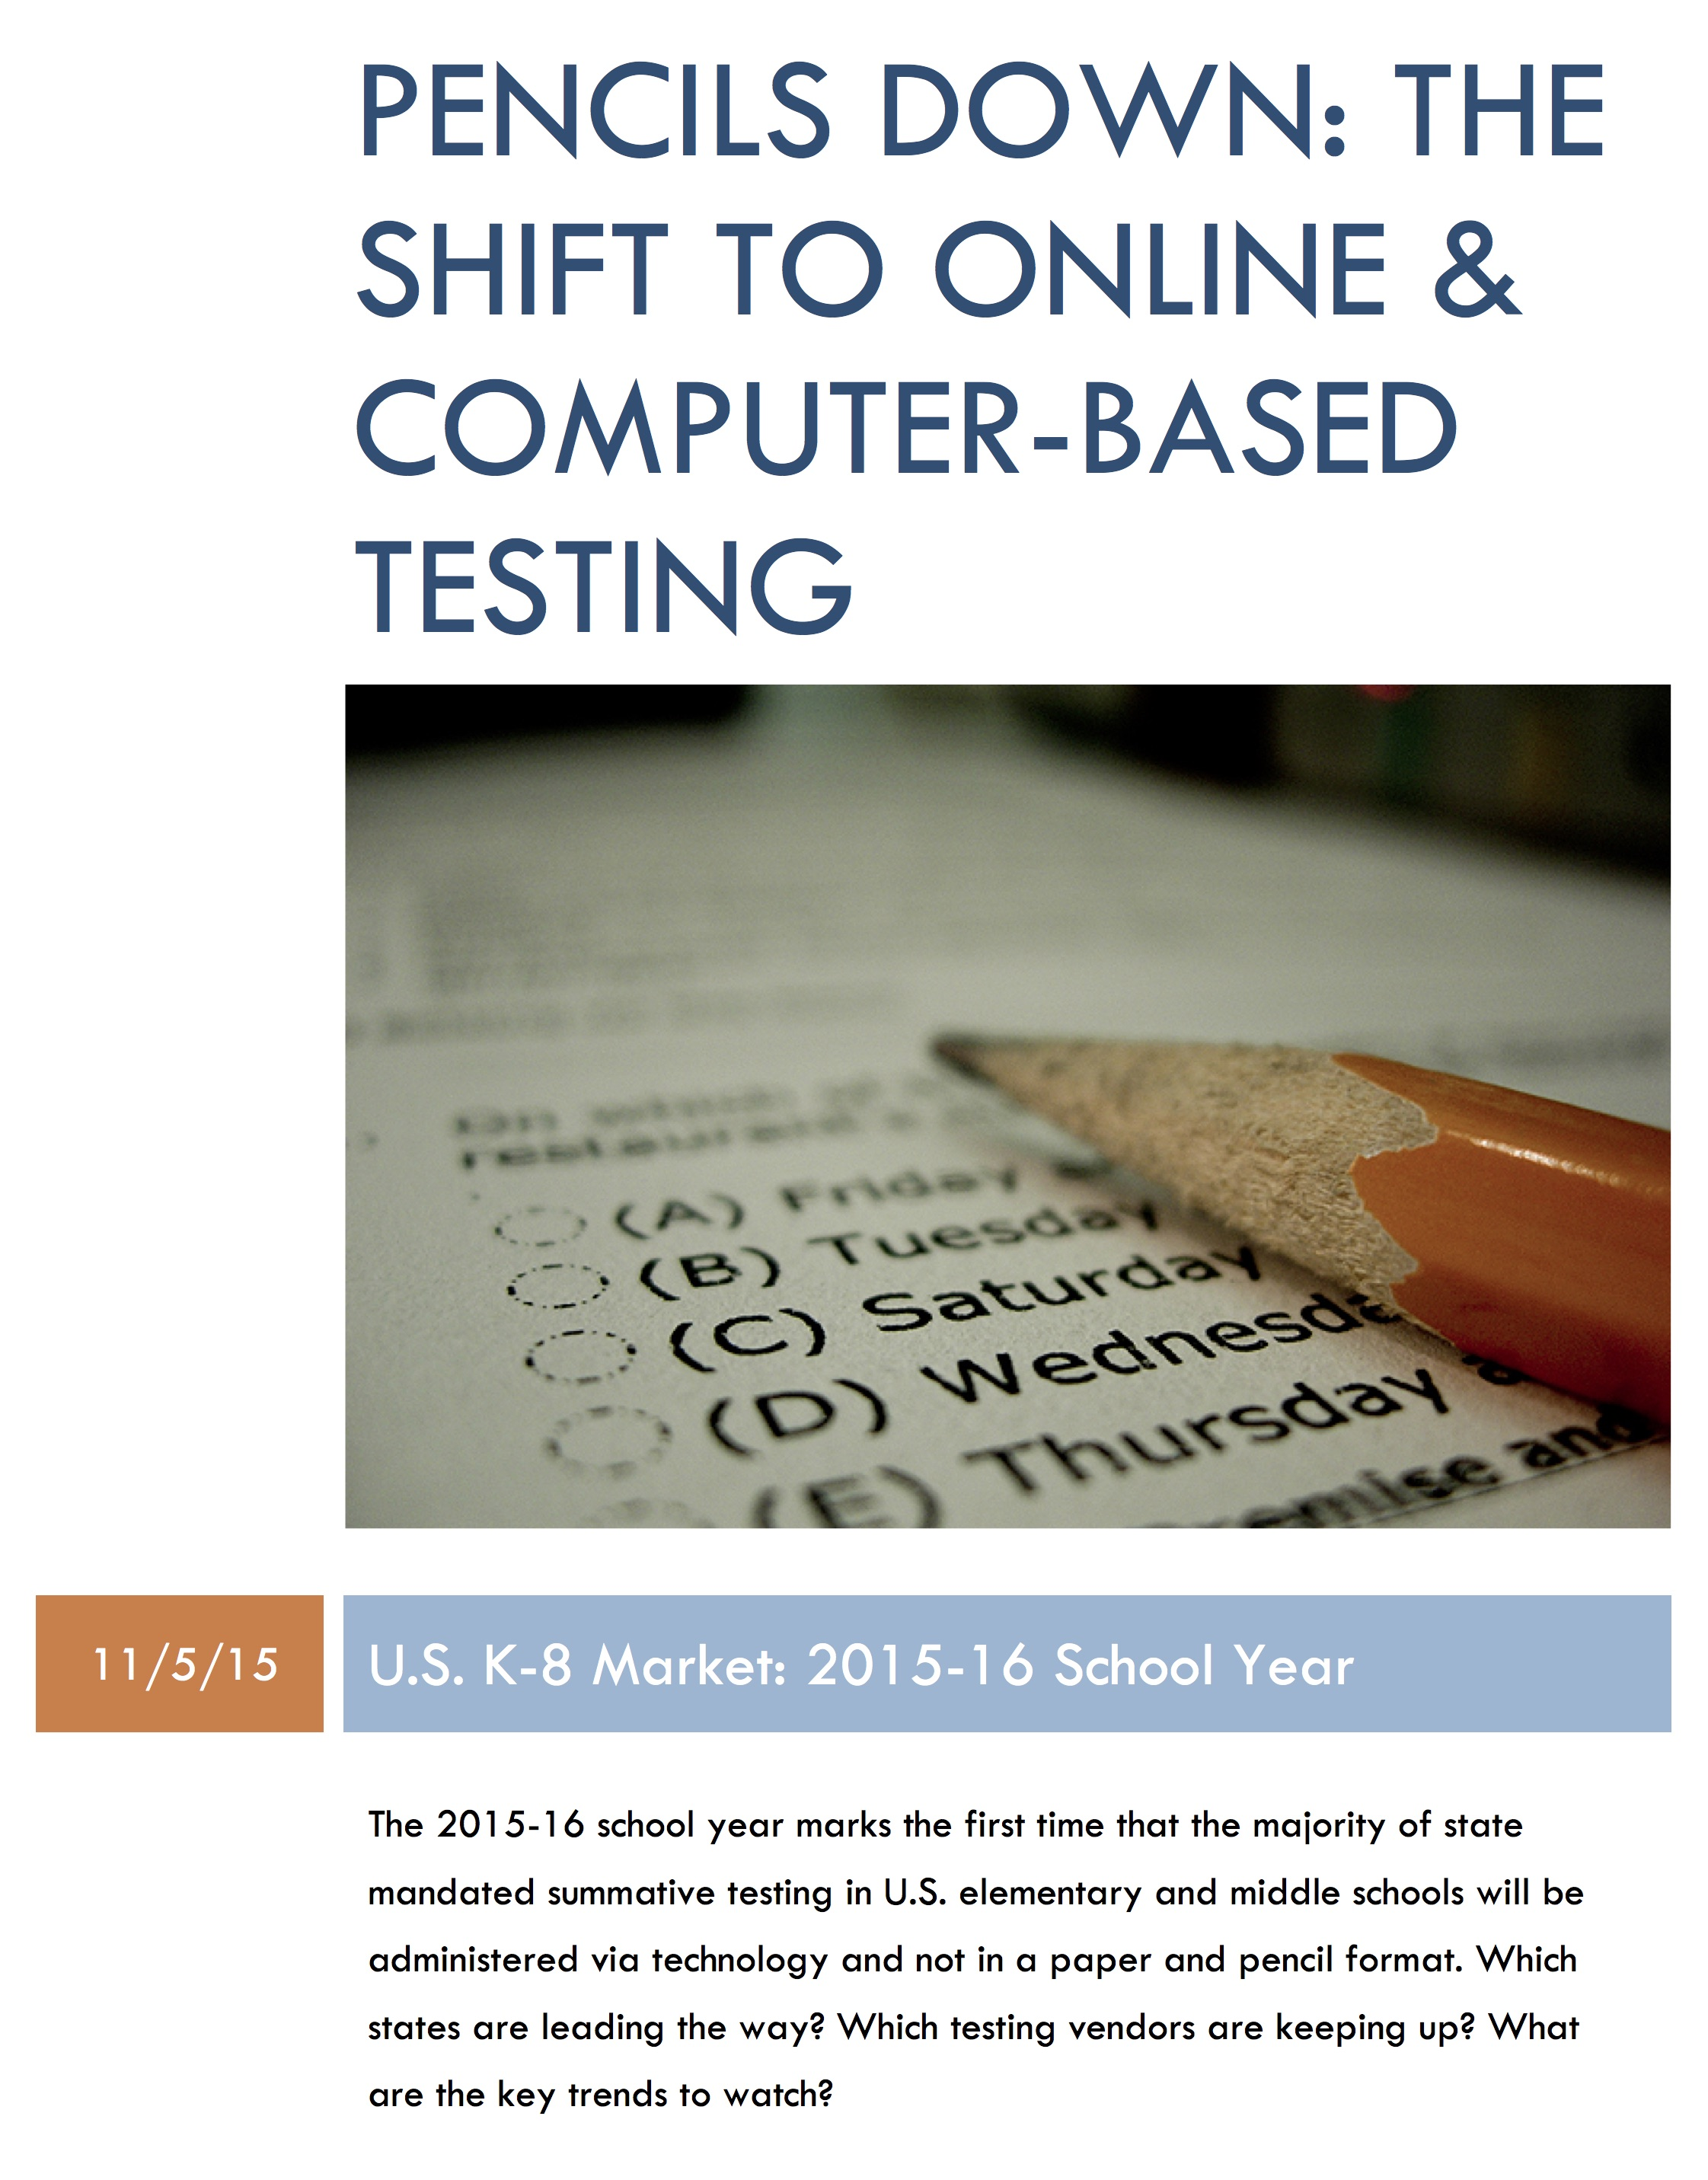 Pencils Down: The Shift to Online & Computer-Based Testing – U.S. K-8 Market (2015-16 School Year)